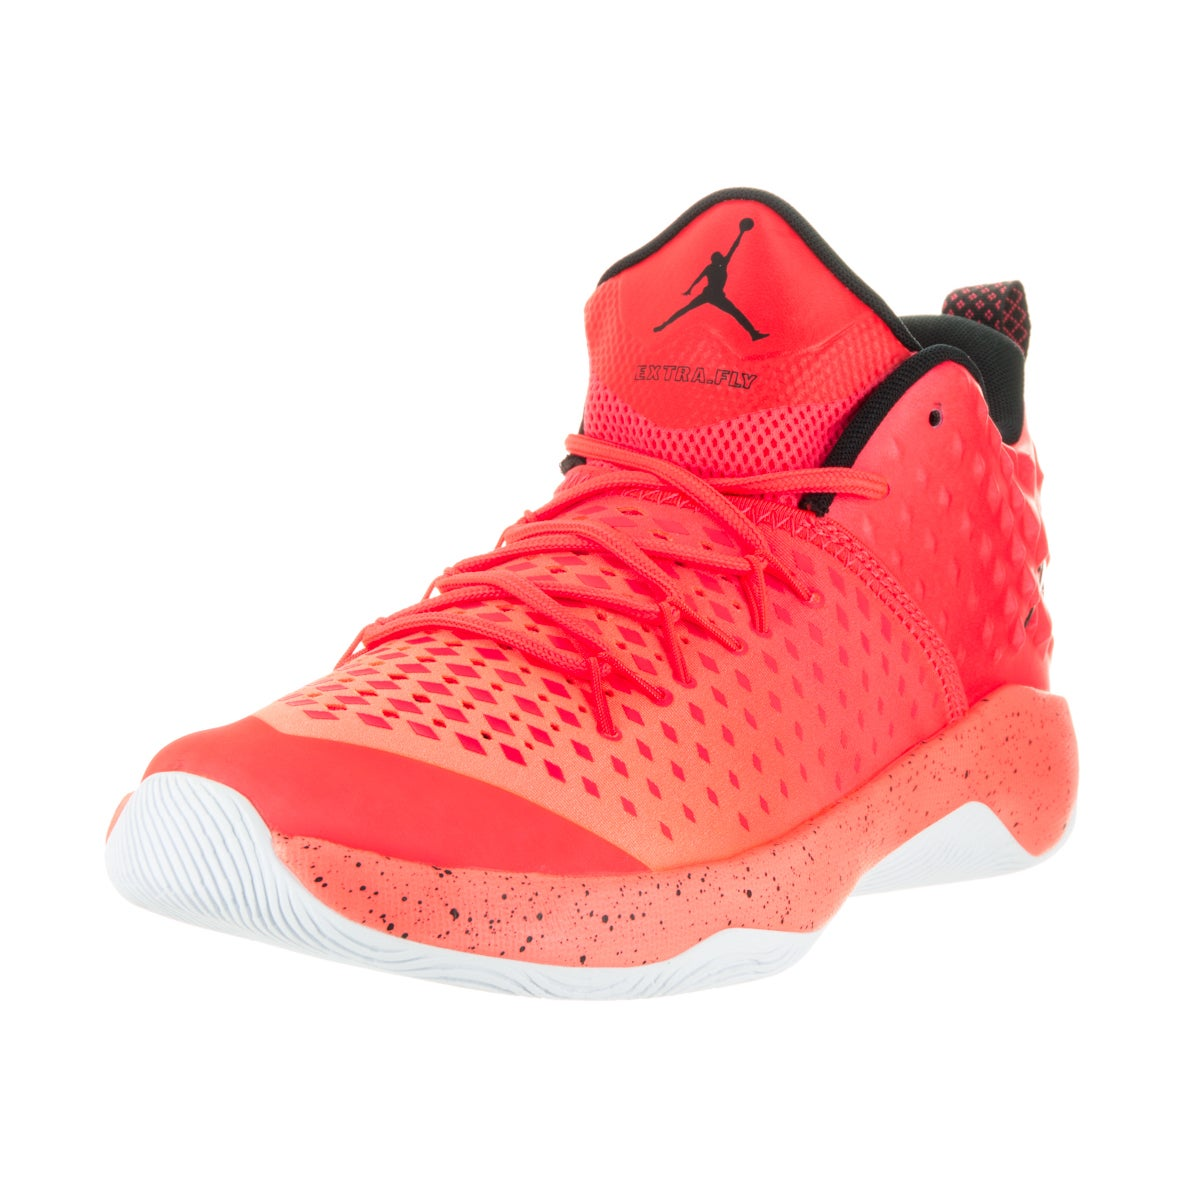 save off 7da61 f973a Shop Nike Jordan Mens Jordan Extra Fly Basketball Shoes - Free Shipping  Today - Overstock - 13984417